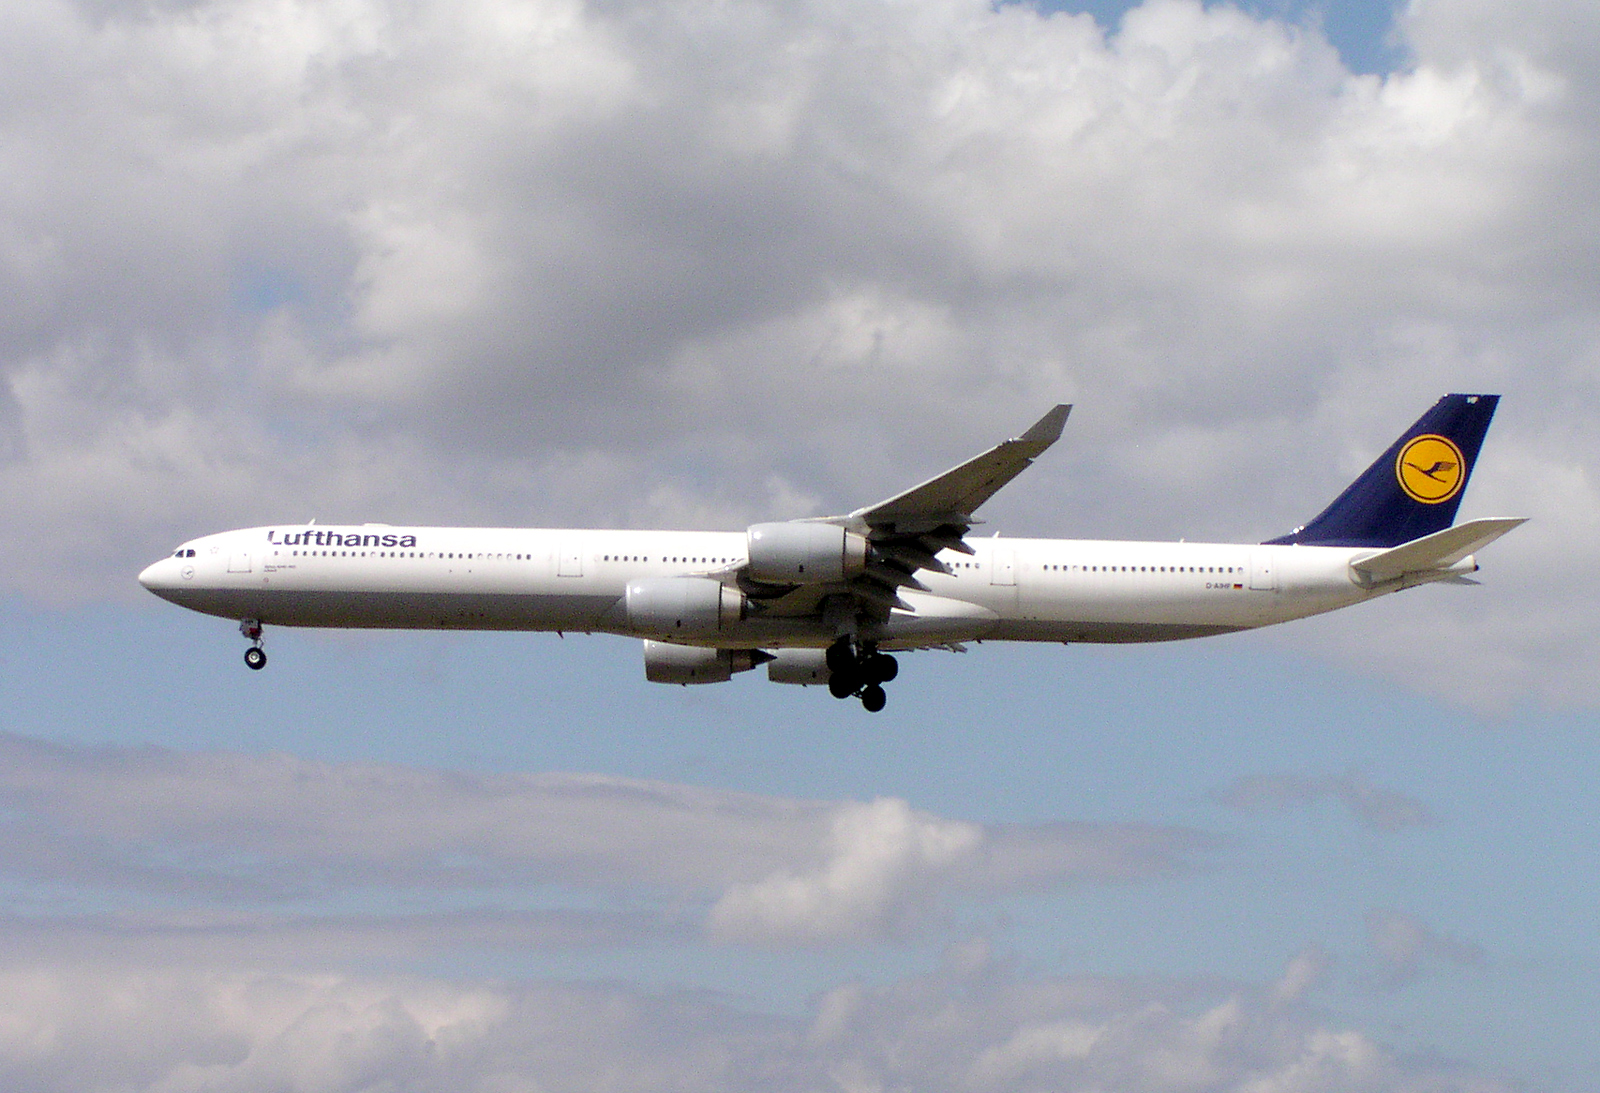 Airlines flying the Airbus A340-600